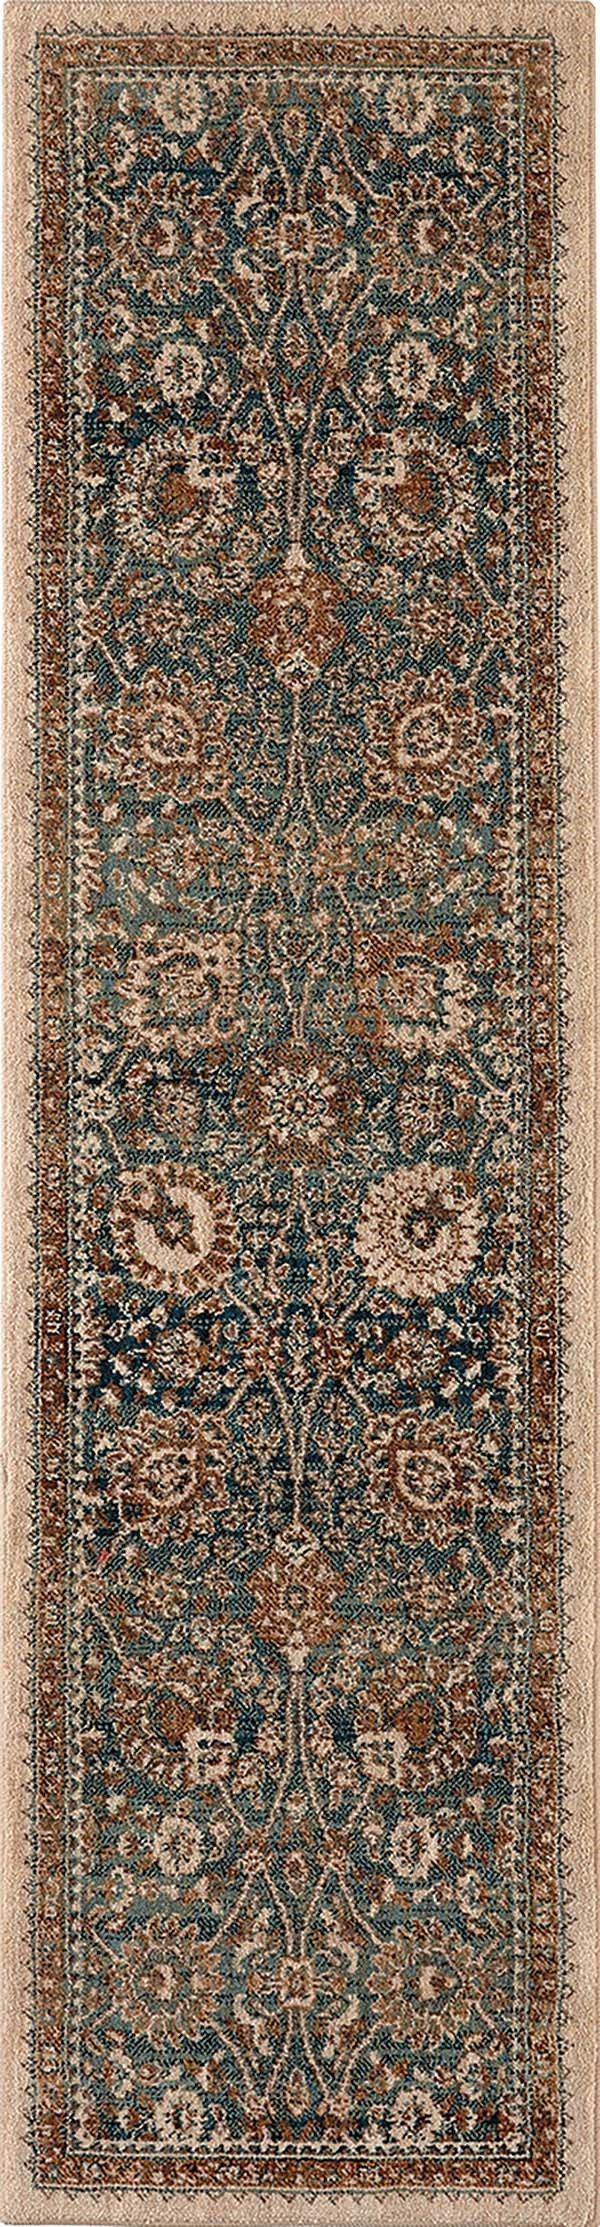 Sapphire (90934-50130) Traditional / Oriental Area Rug